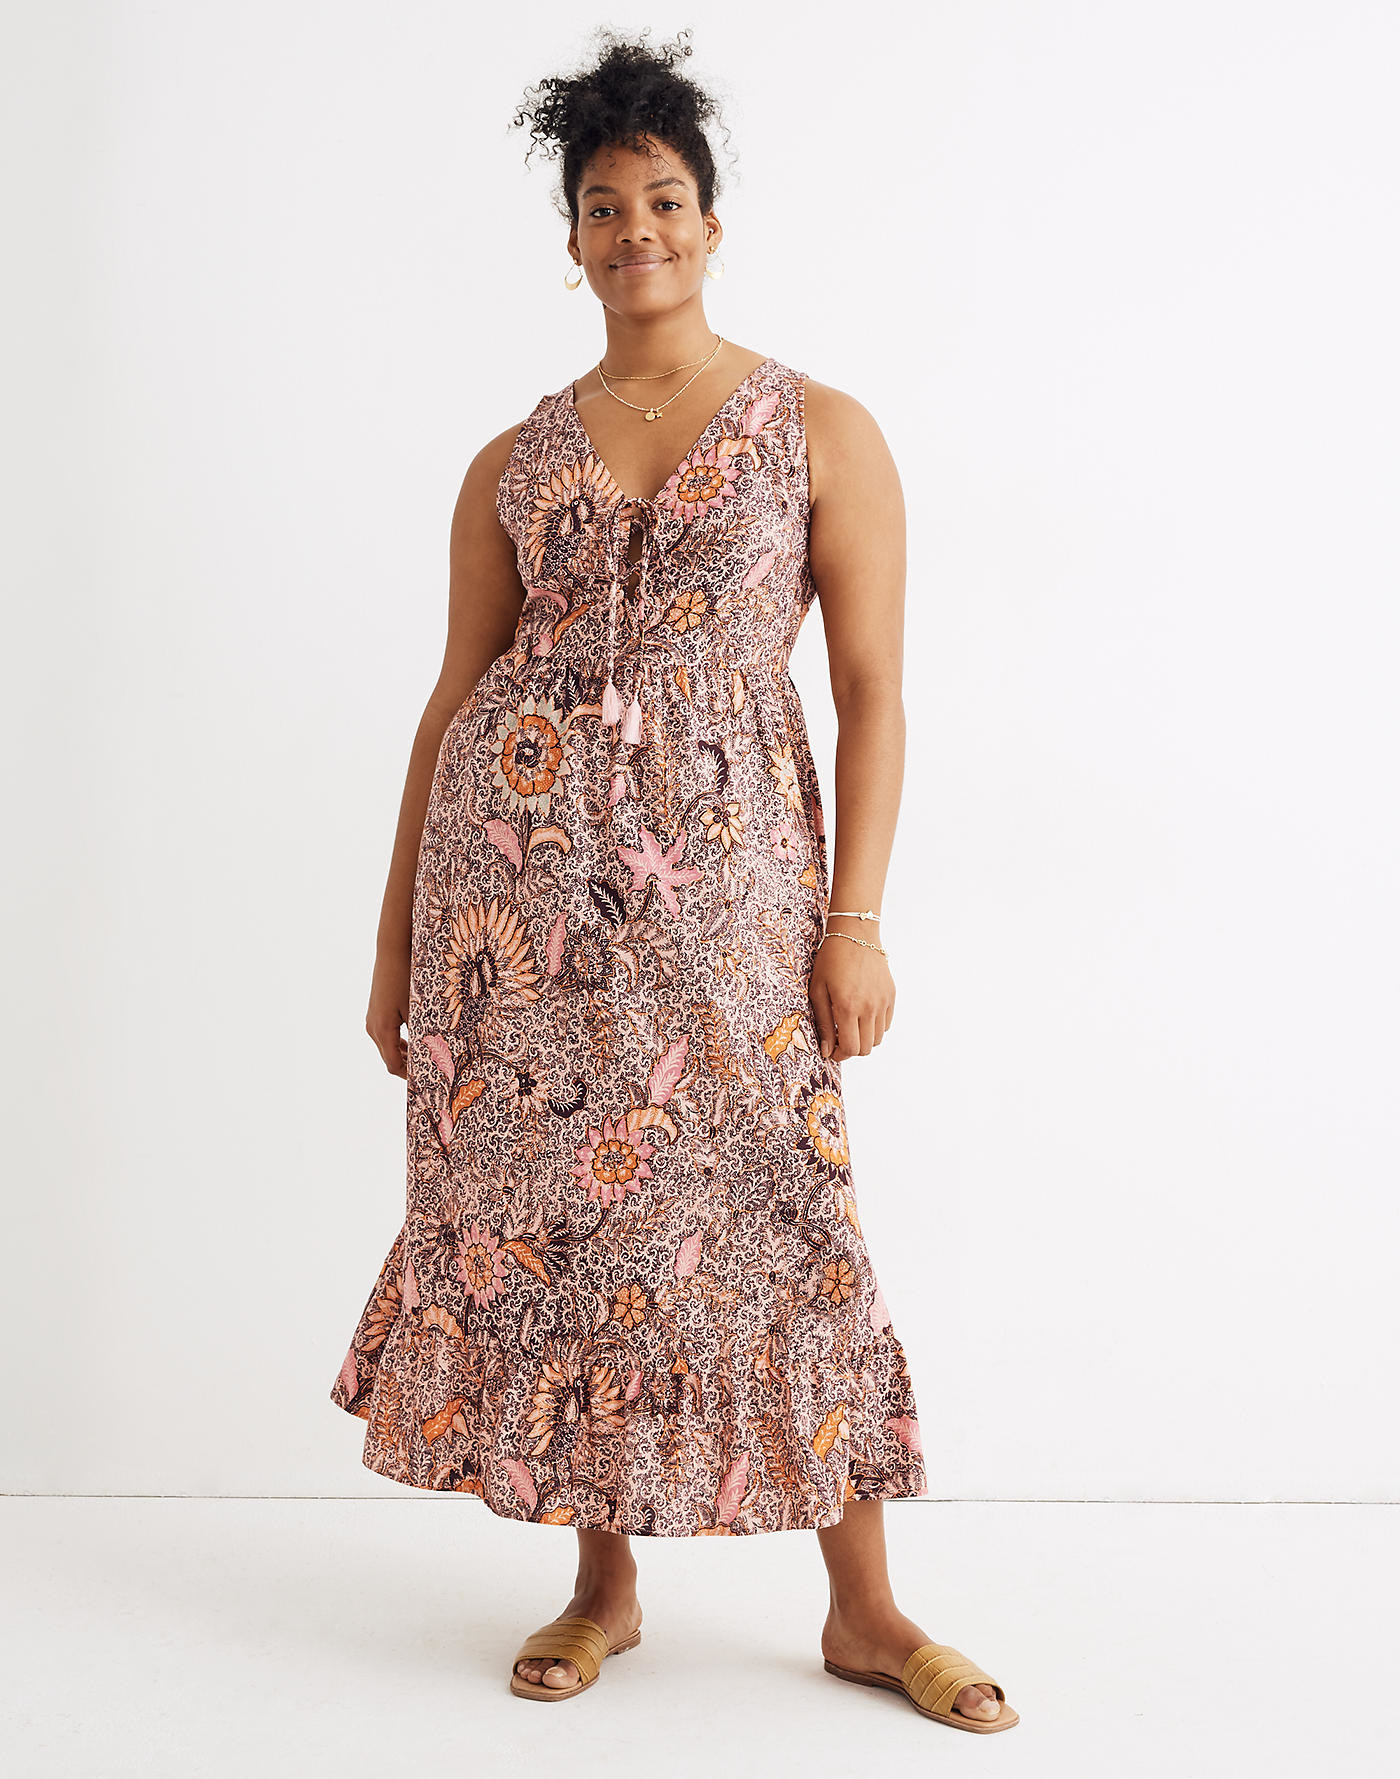 Model wearing dress with a ruffle along the bottom hem, tie in the middle of the v-neck and pink, orange, and brown floral graphic pattern